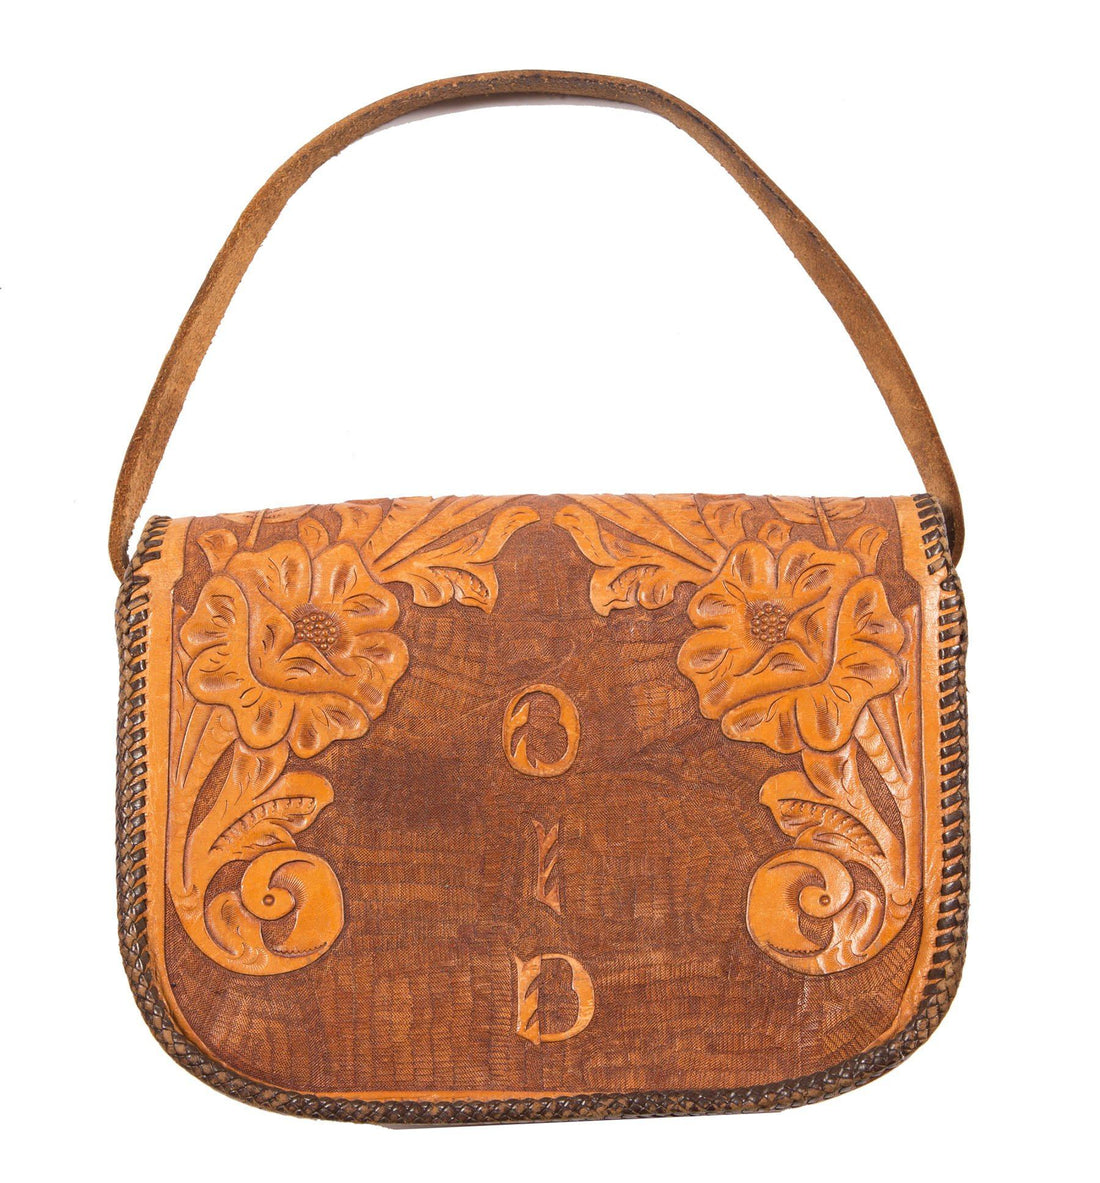 60's Leather Tooled Purse - Vintage - Iron and Resin